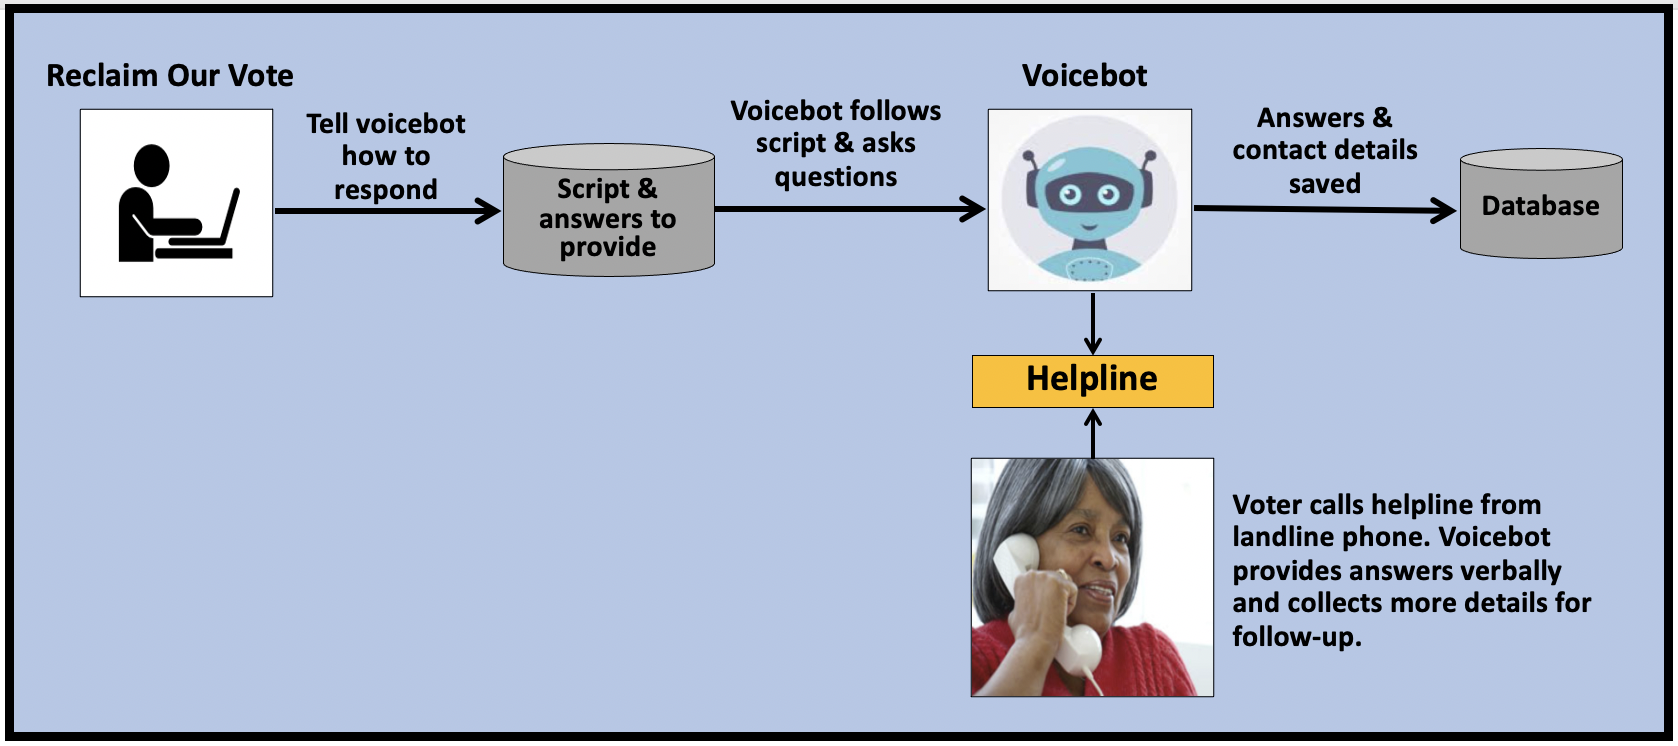 Voicebots help field questions from voters who only have landline phones.